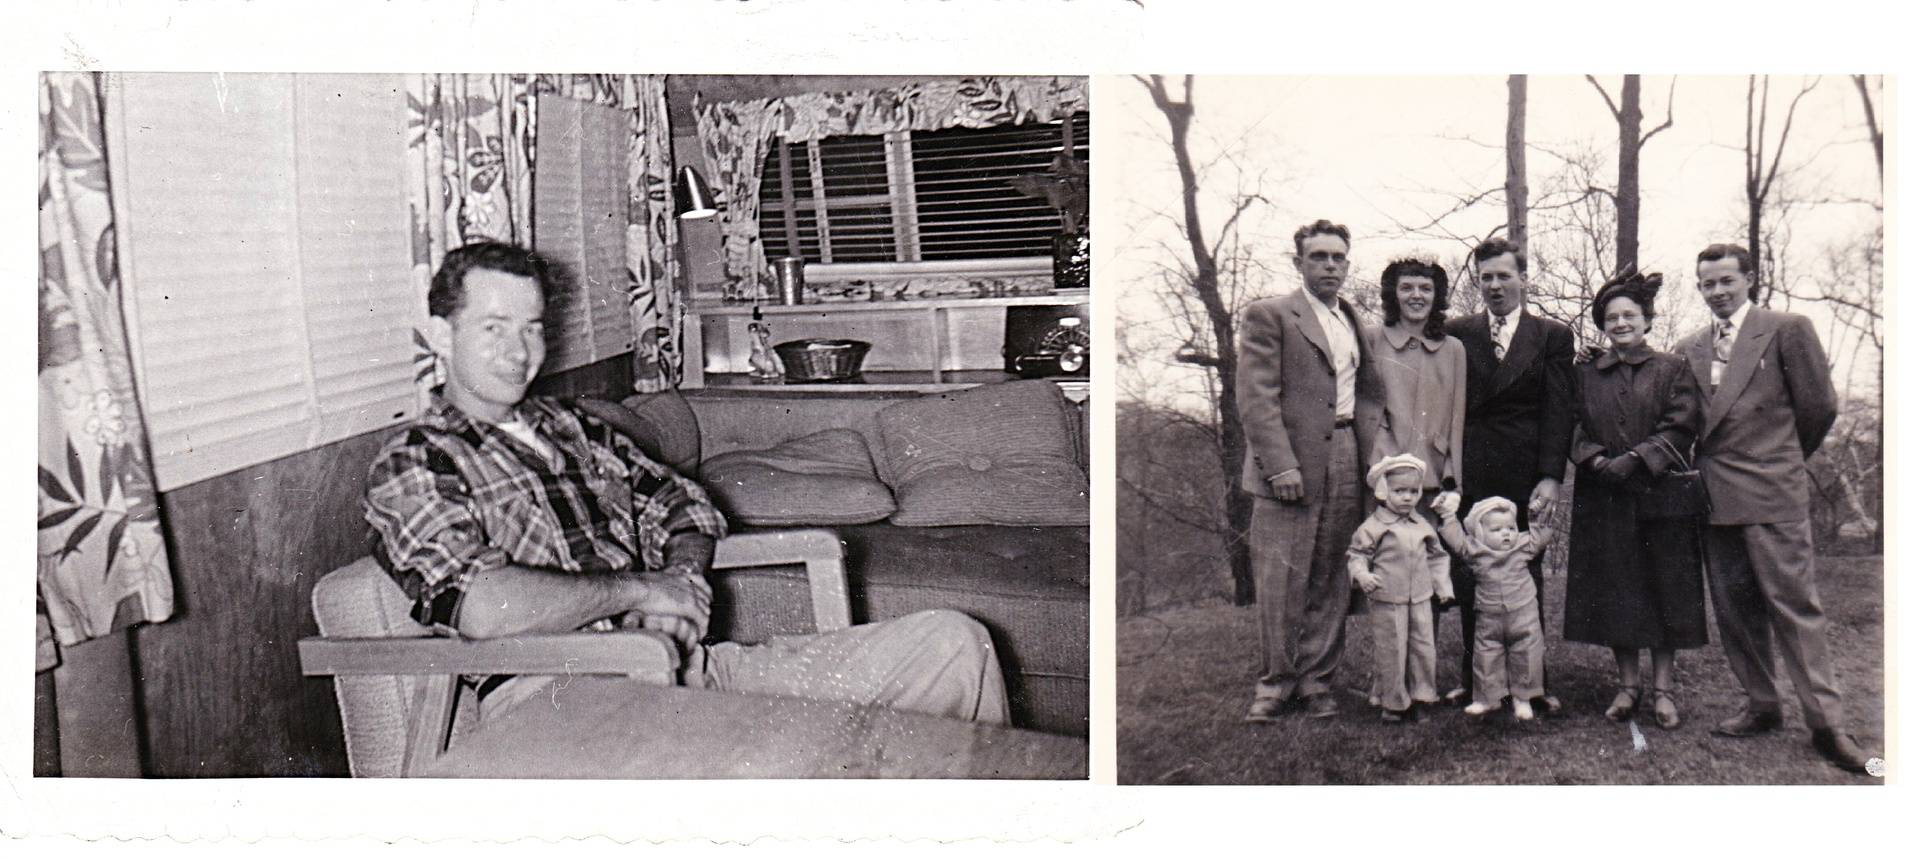 George Bowers (left photo) and George with his family late 1940's.